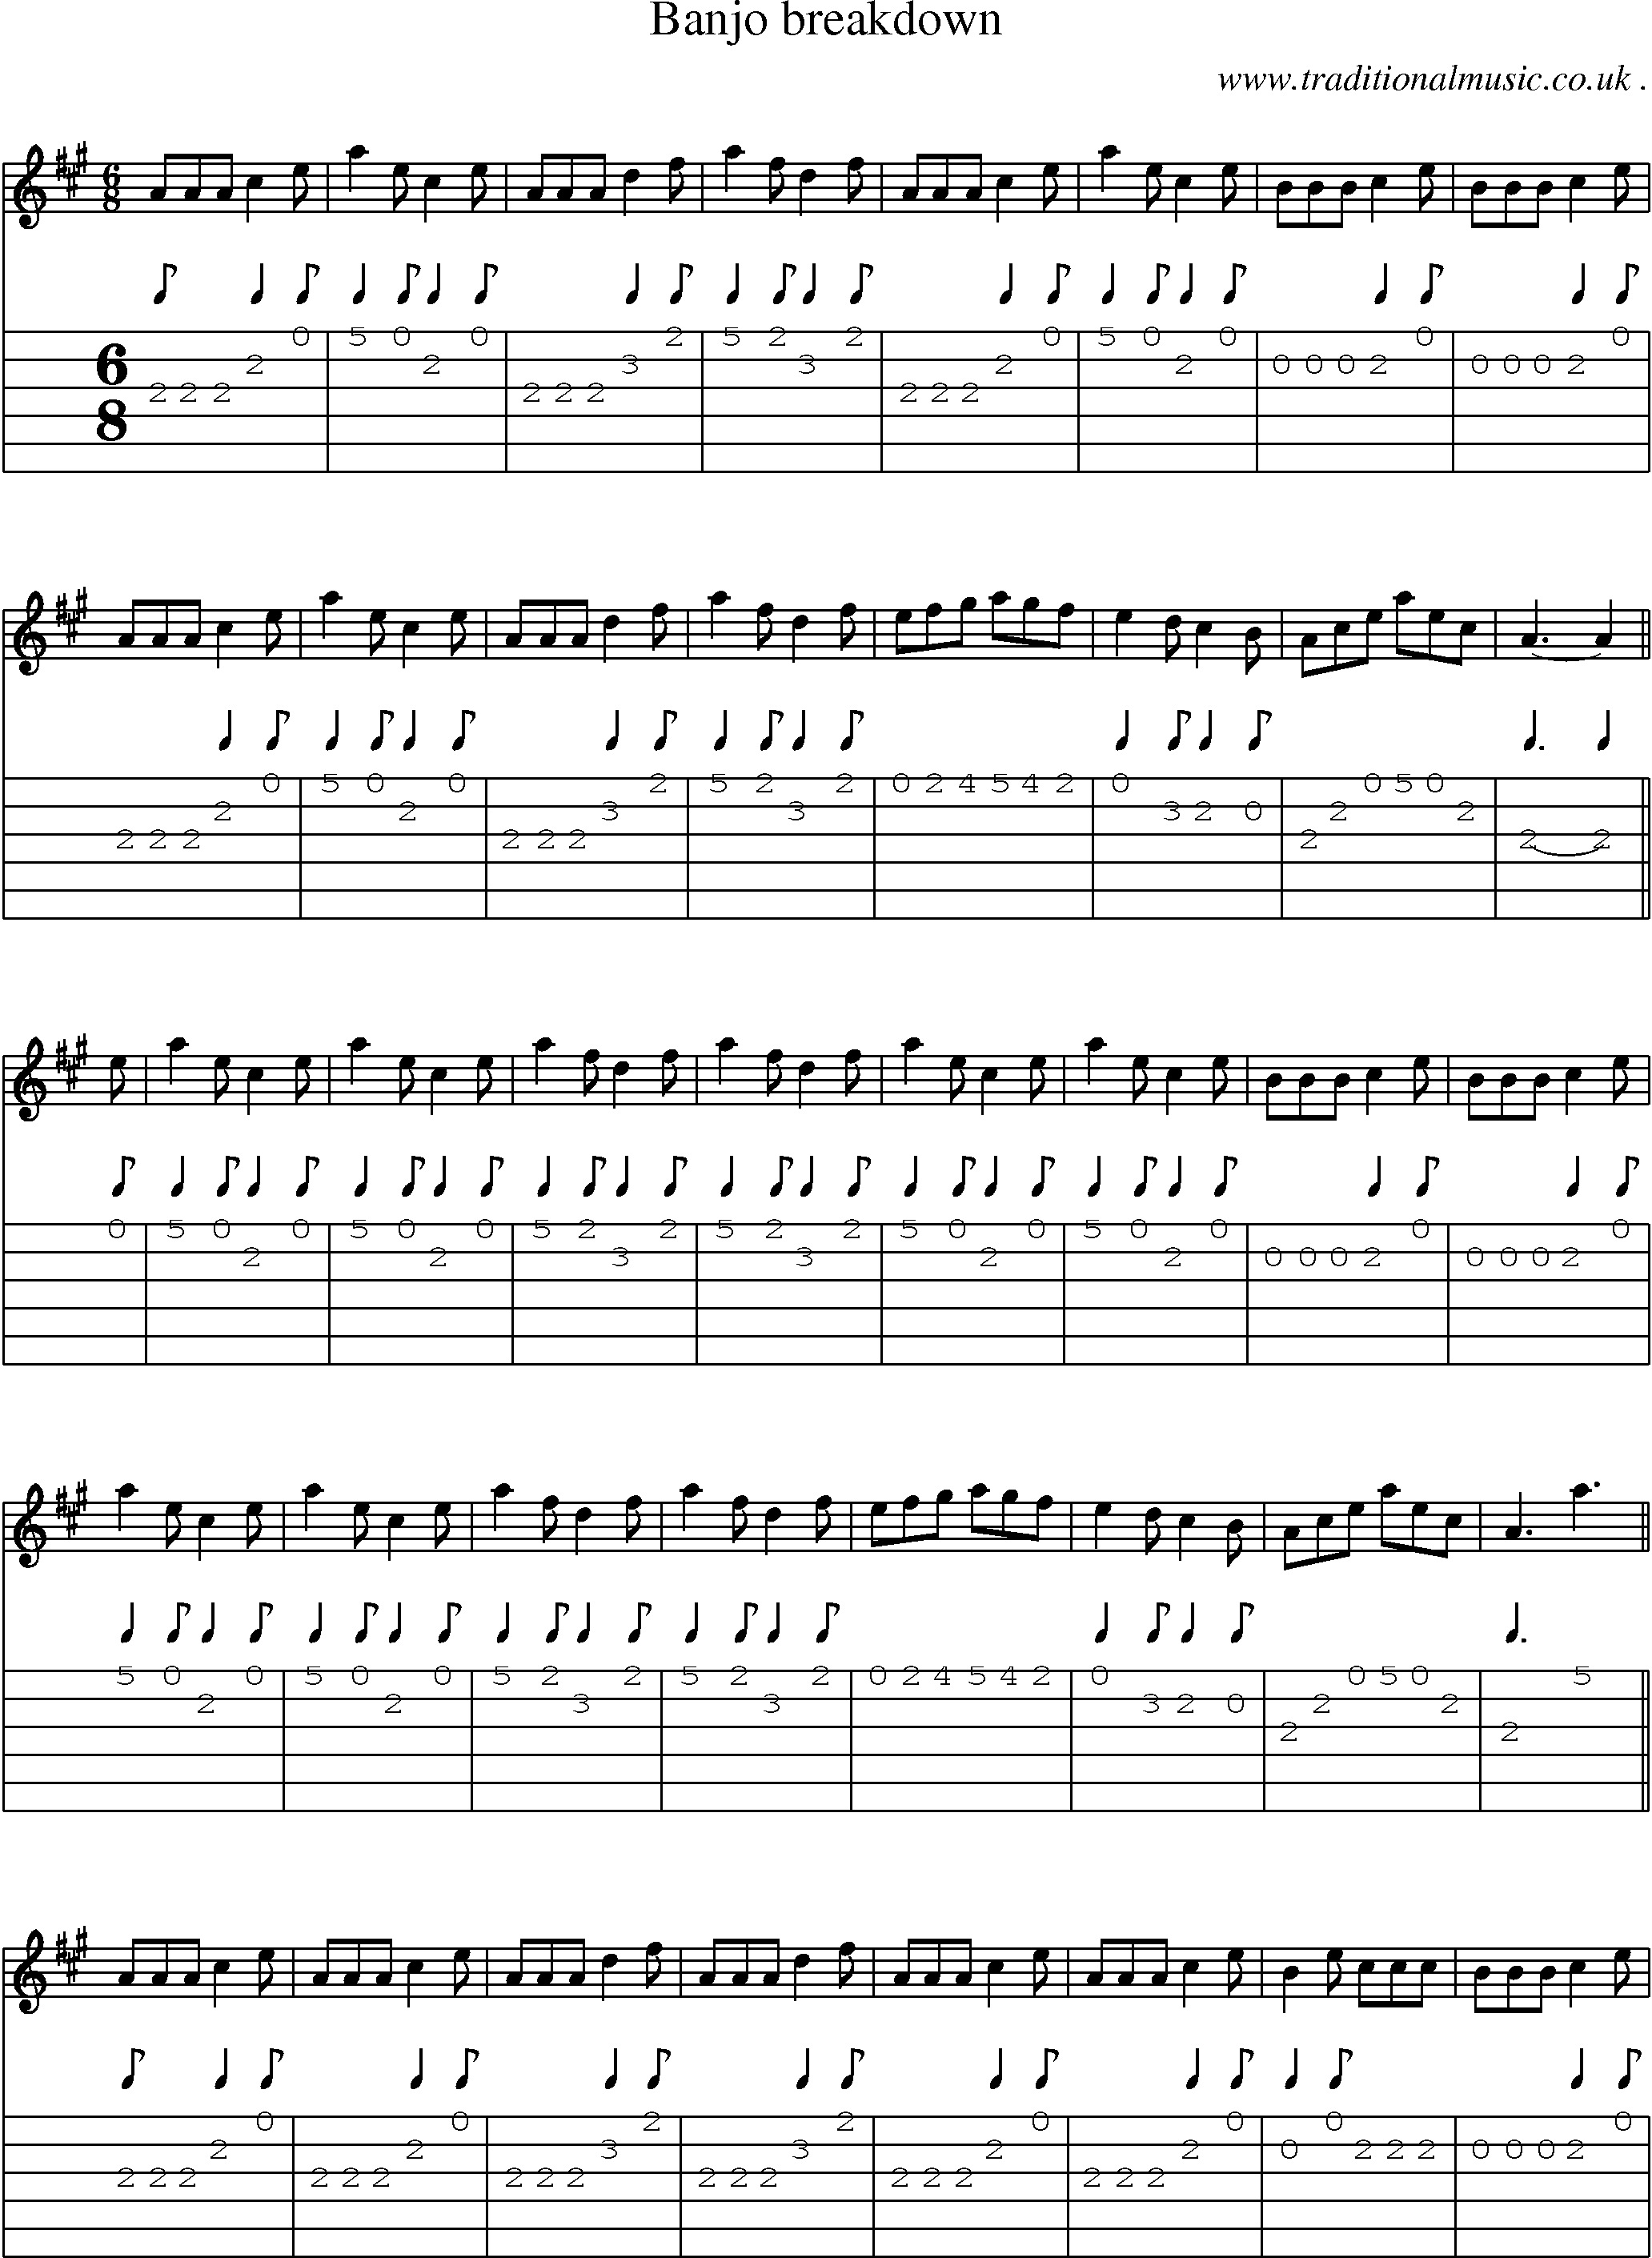 American Old-time music, Scores and Tabs for Guitar - Banjo Breakdown